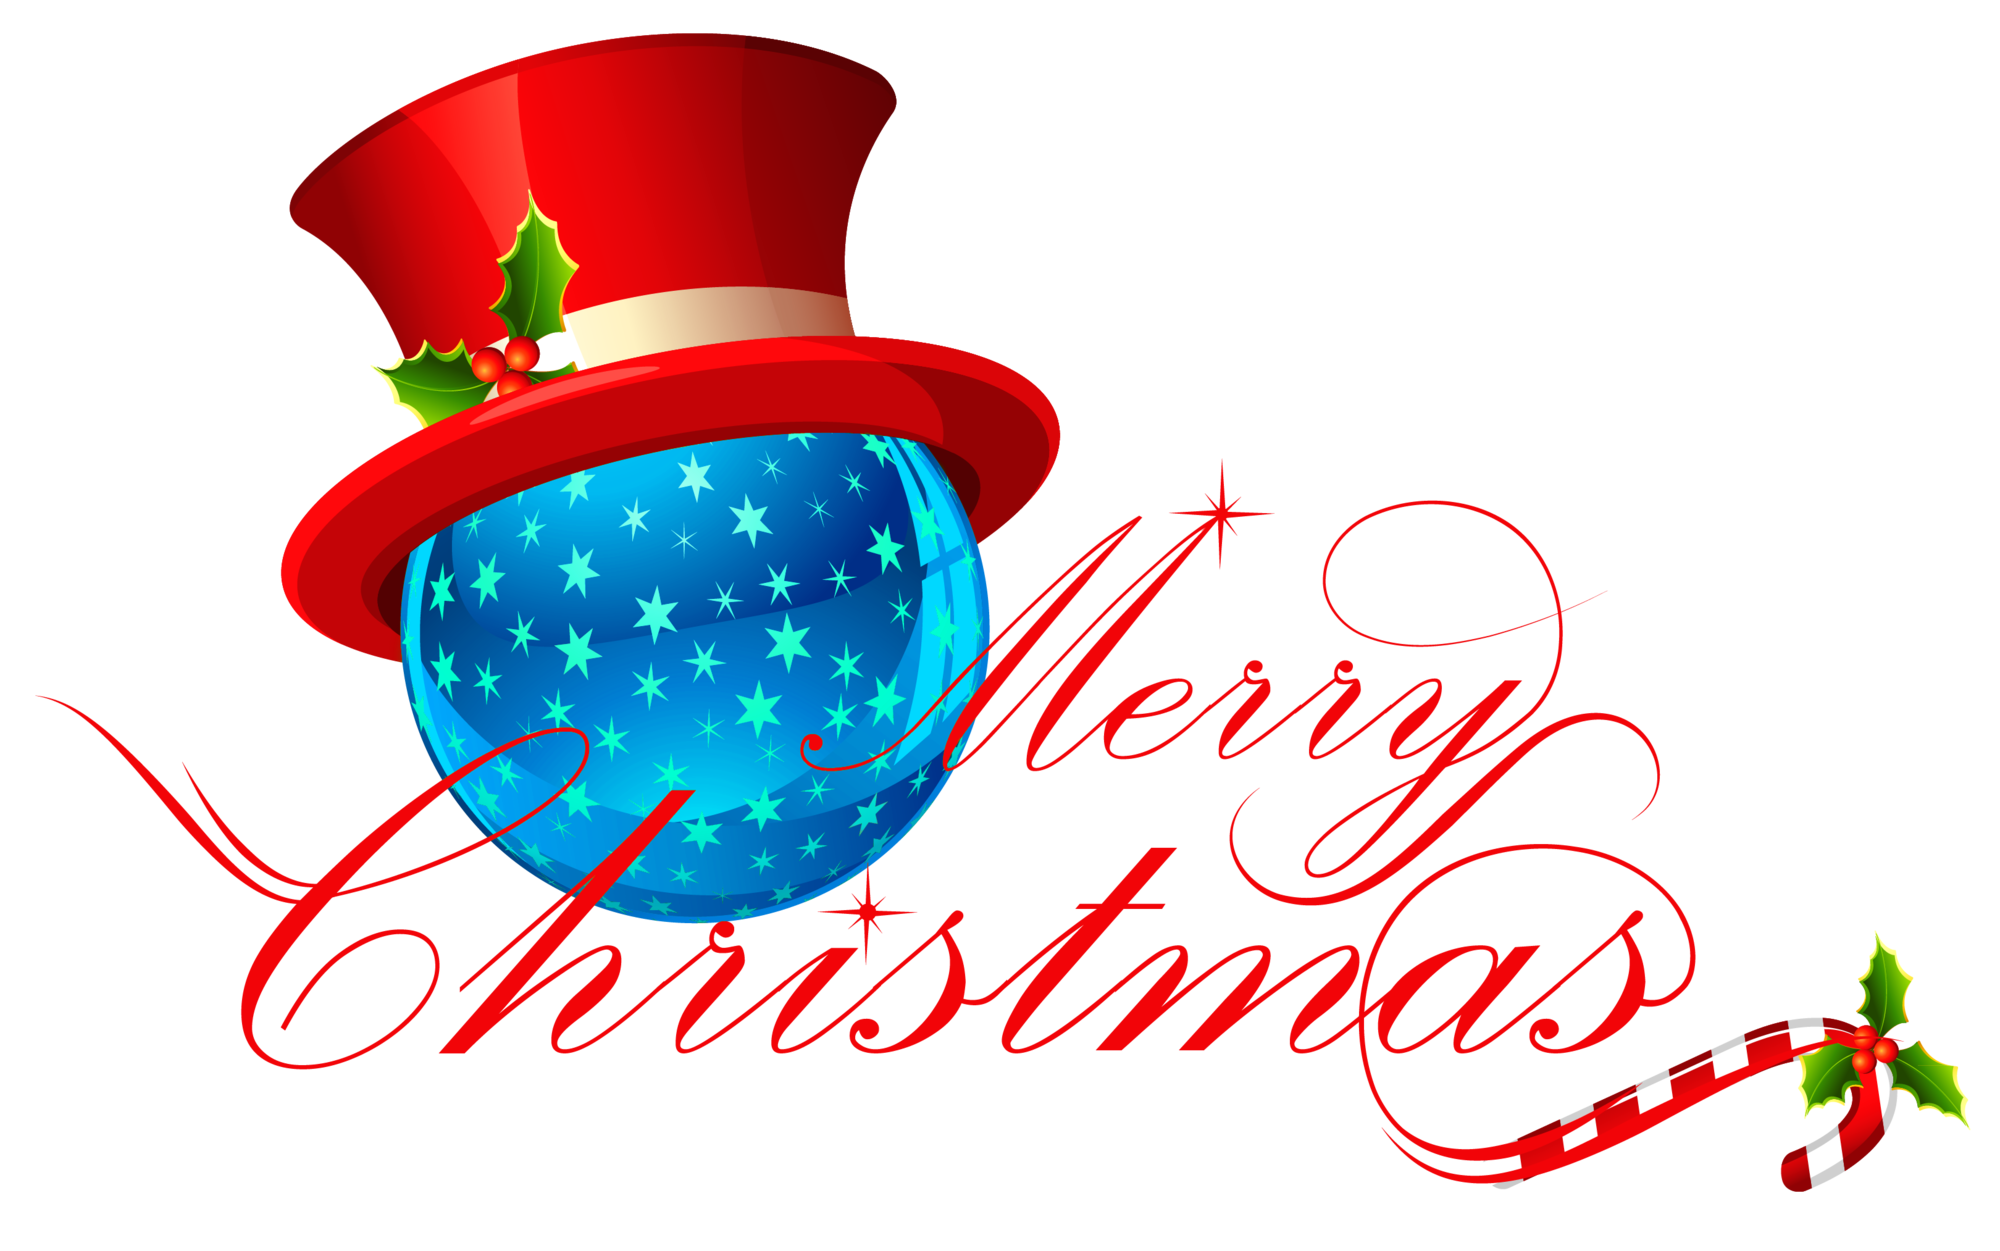 Merry Christmas Transparent Clipart - Clipart Suggest